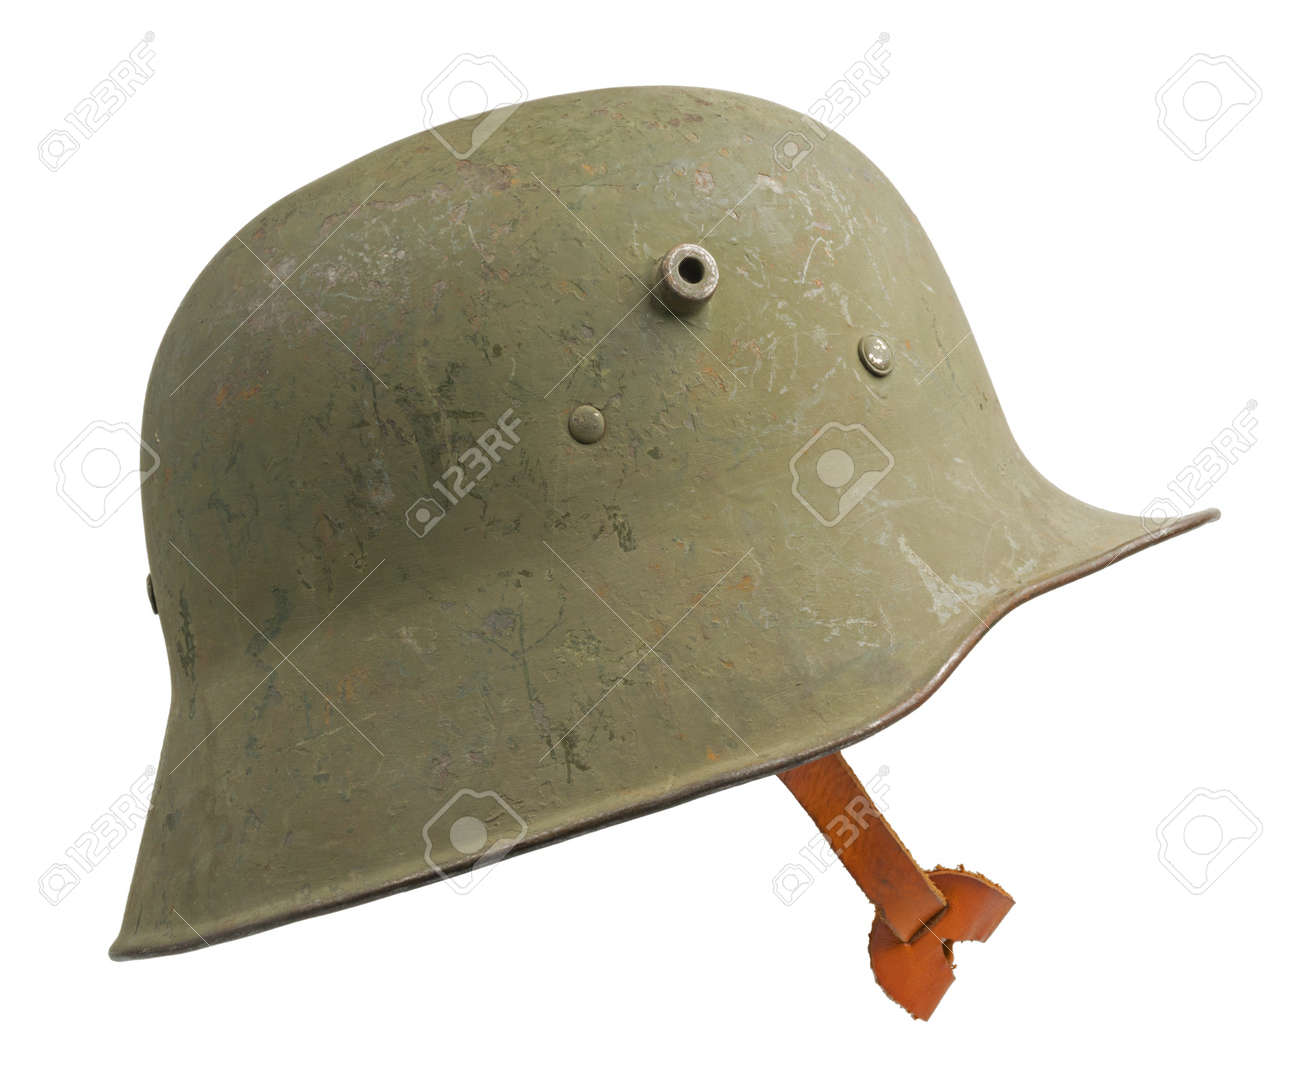 Strahlhelm A German World War One Stahlhelm M1918 Military Helmet The